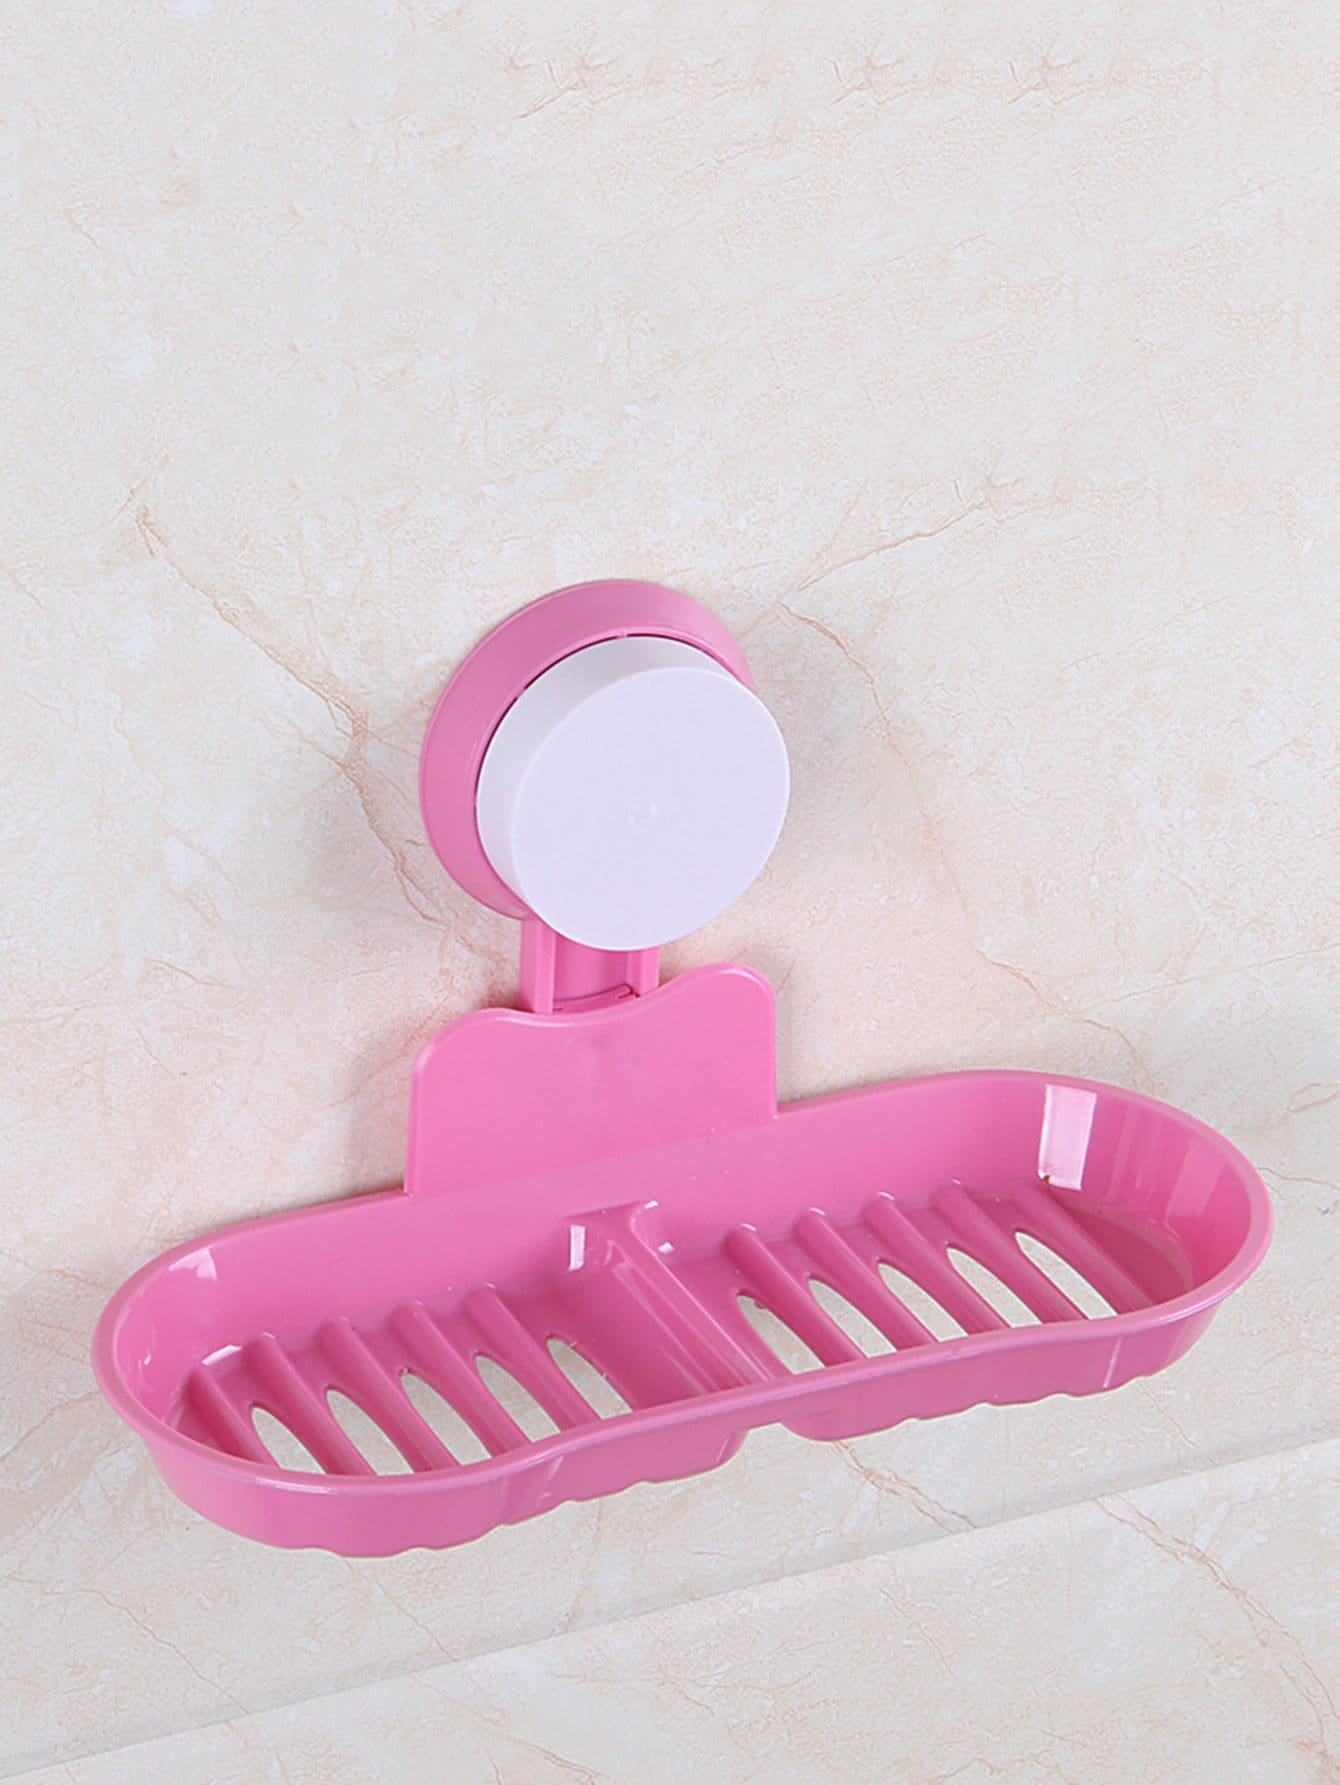 Wall Mounted Double Soap Holder wall mounted tooth brush holder rose gold finish jade cover with double ceramic cups